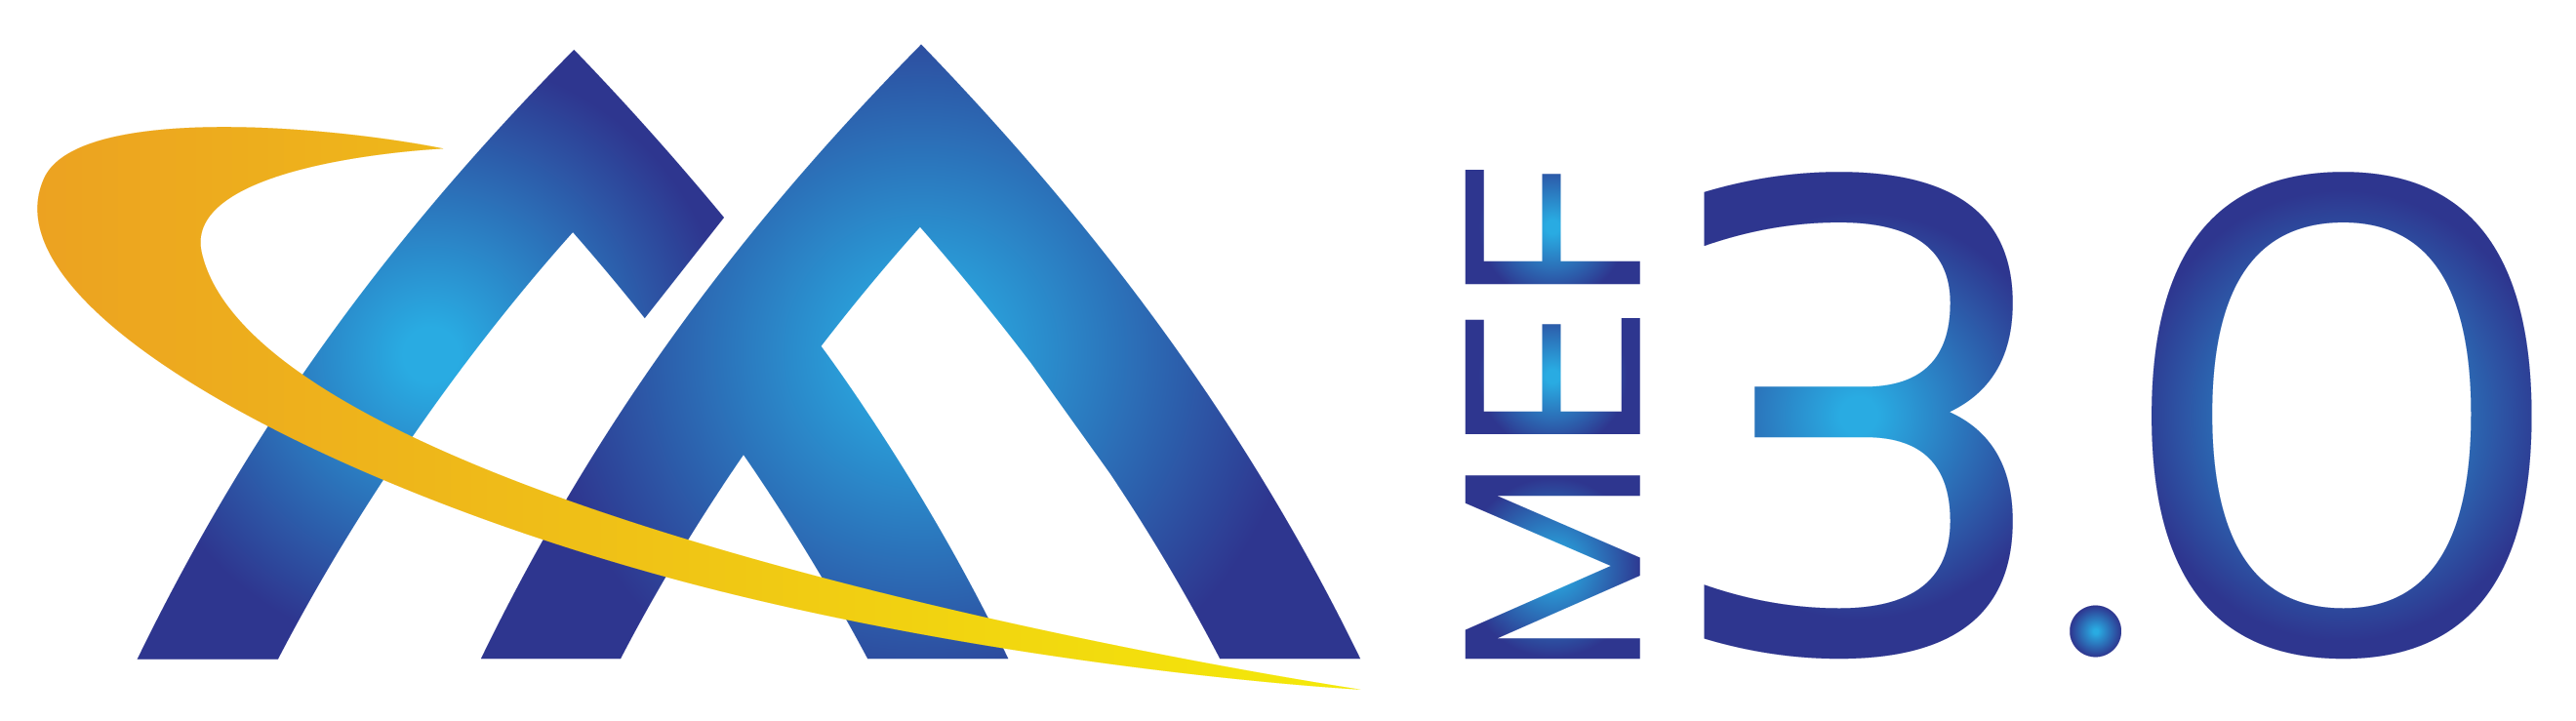 MEF Official MEF30 Logo Gradient Yellow Blue RGB Oct-22-2017-01